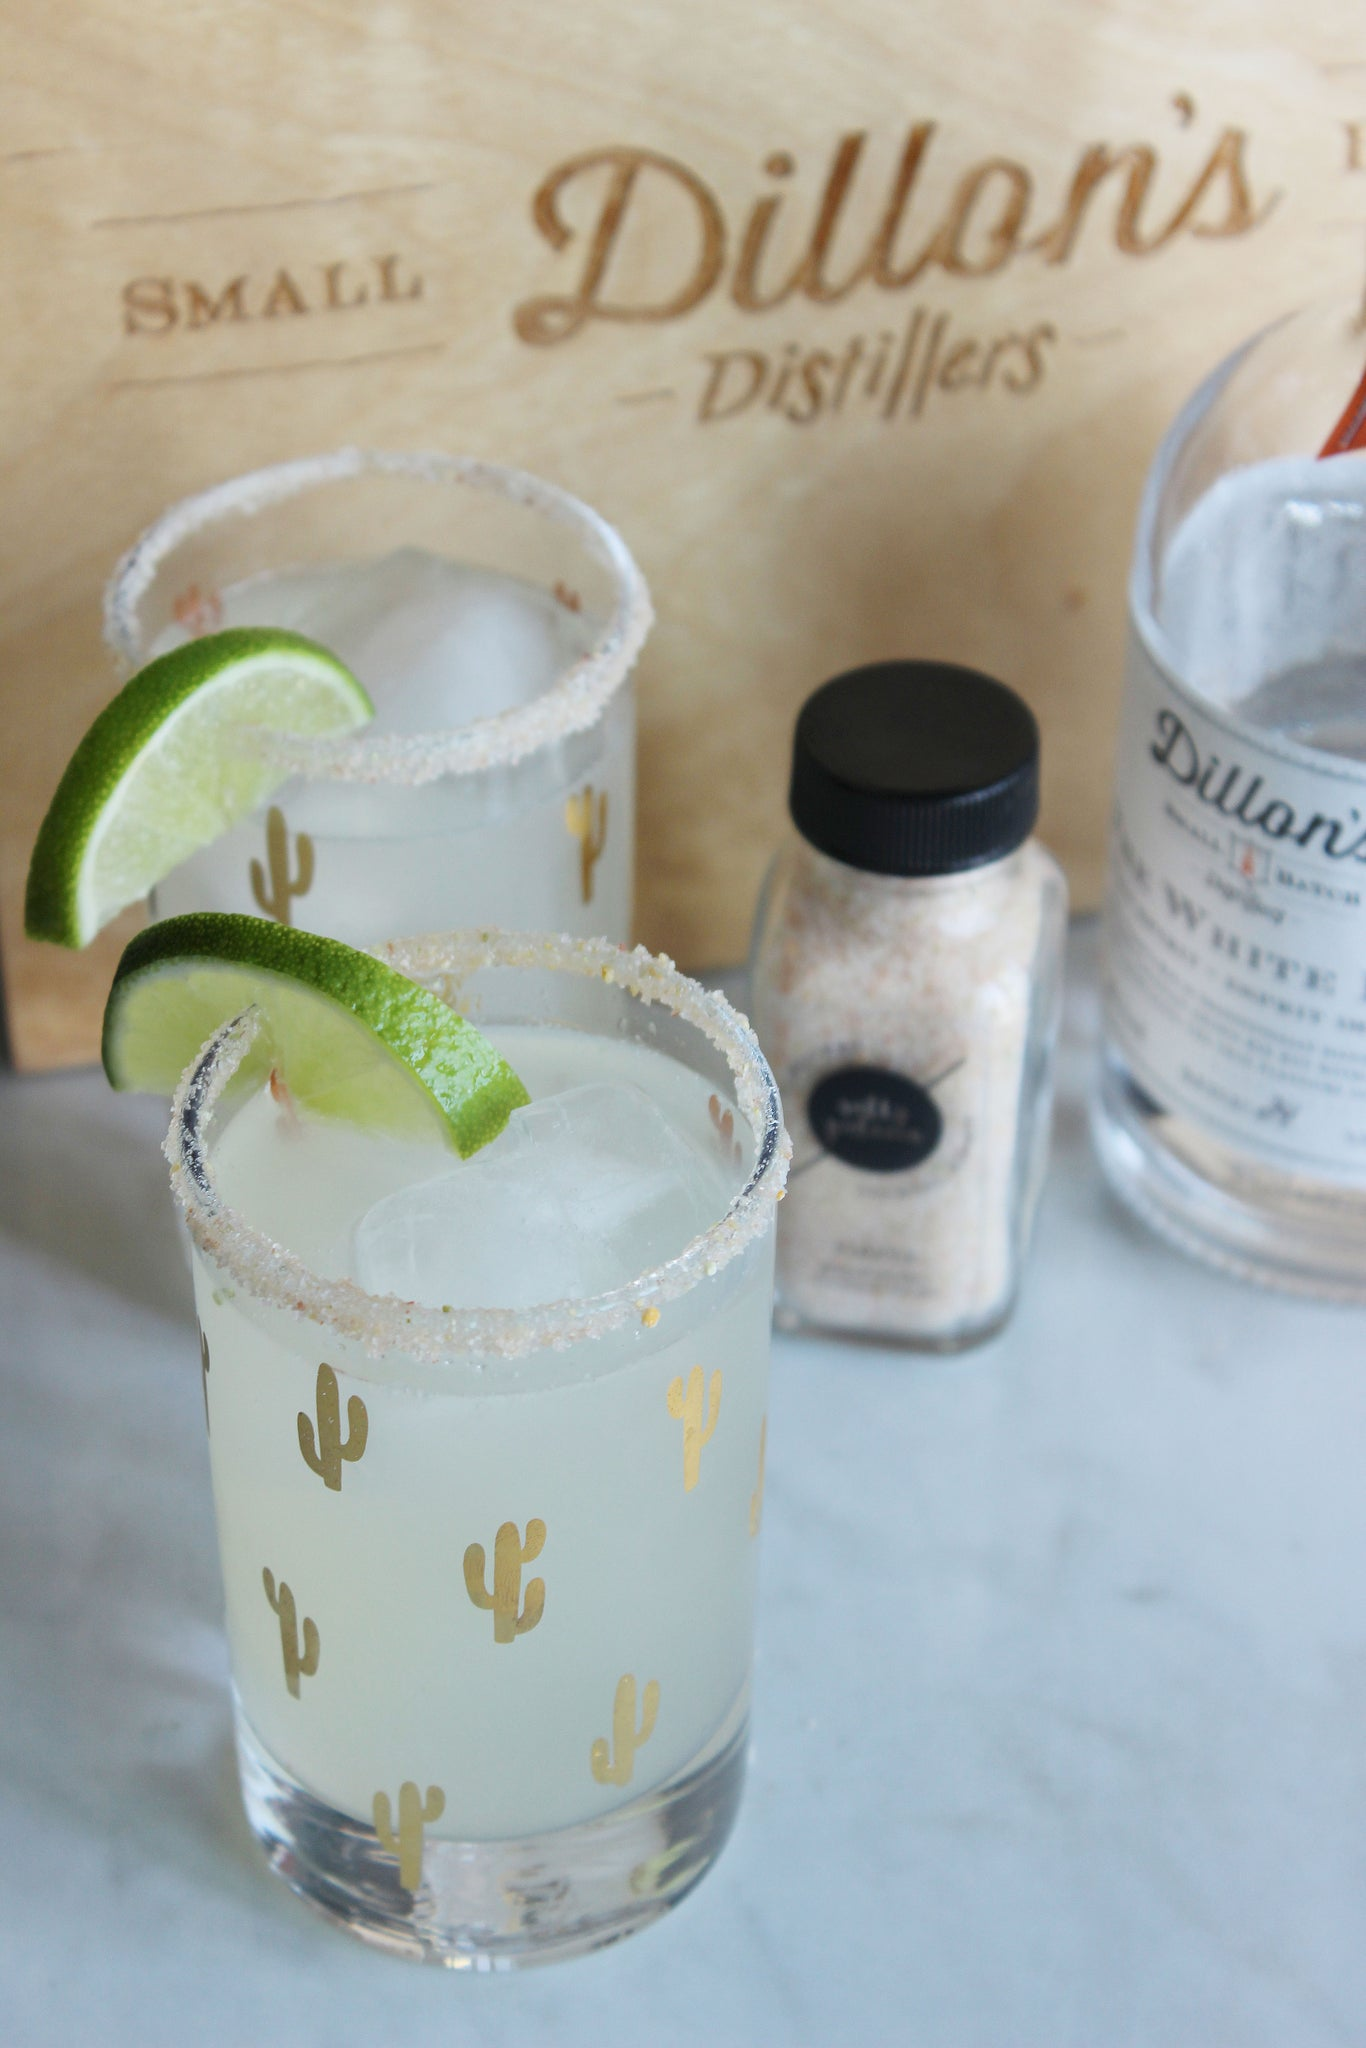 salty paloma dillons white rye margarita cocktail recipe